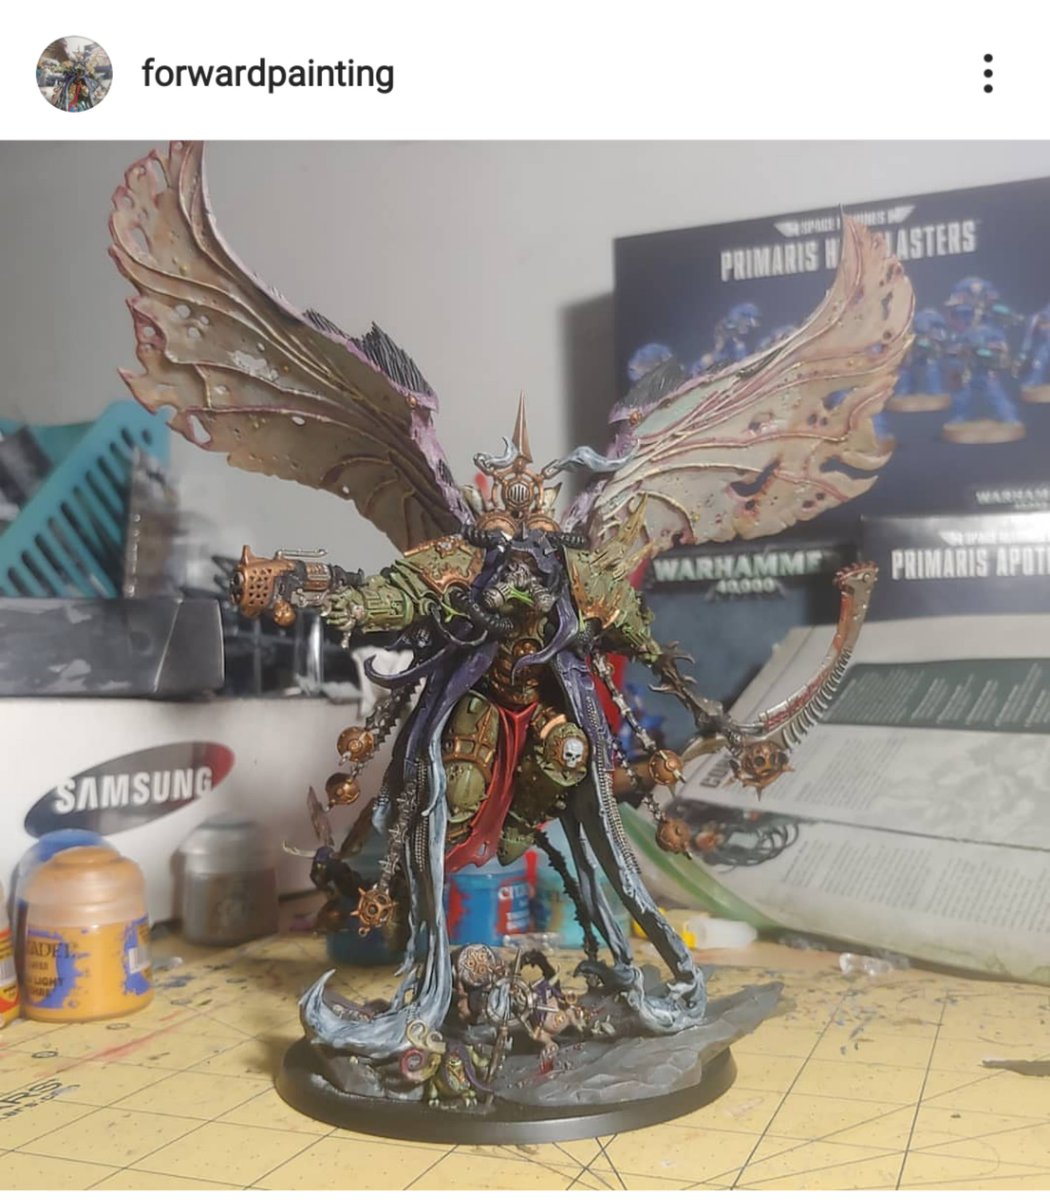 Just found out my nephew has an Insta account sharing his fig paintwork. So proud. Check this feller out:  https://www.instagram.com/p/B2Y-xLcHfxN/?igshid=zuqhhsmt07in…